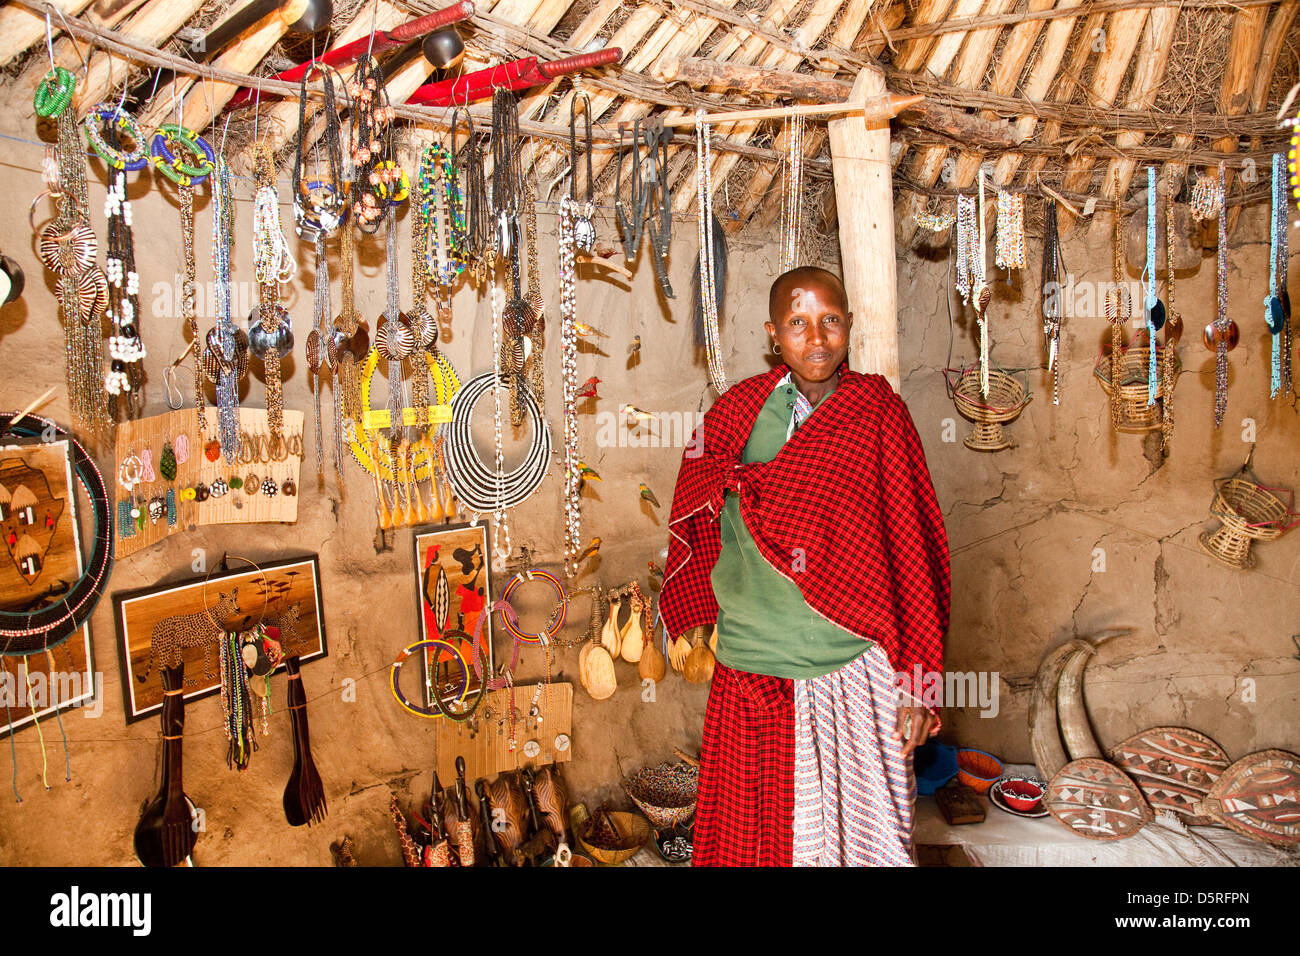 Africa, Tanzania;Maasai women in traditional dress in her souvenir stand with hand made jewelry - Stock Image